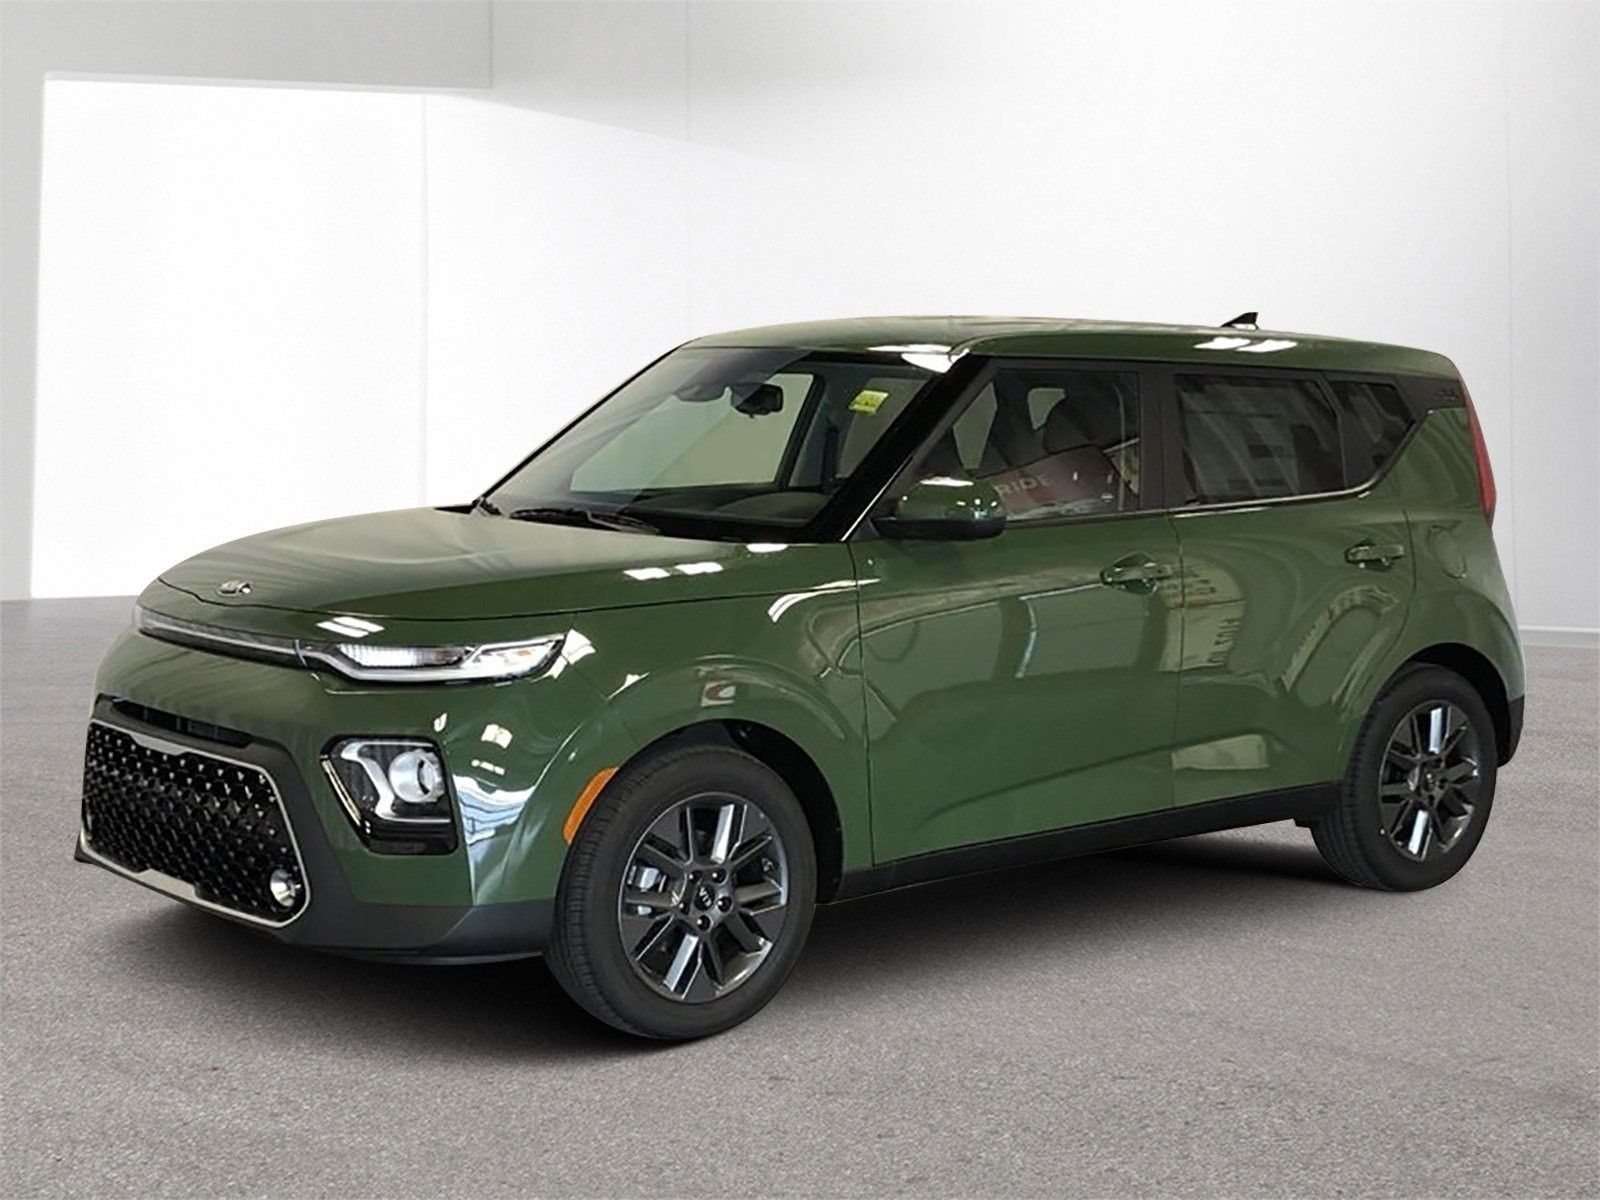 2020 Kia Soul Undercover Green Review And Release Date Di 2020